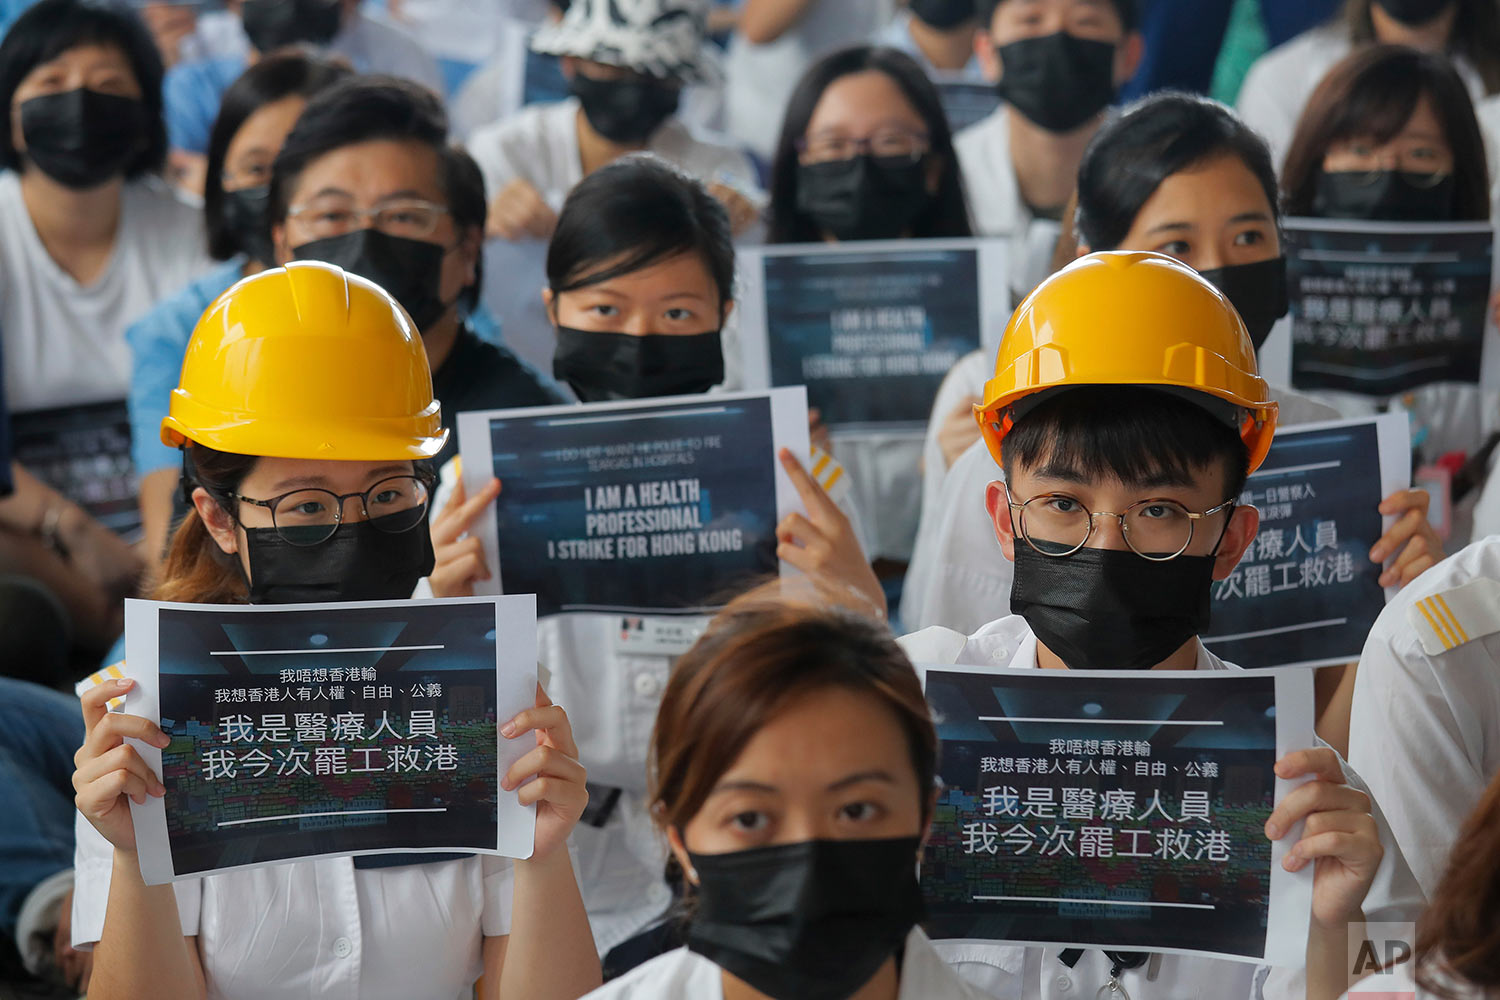 Medical staff take part in a protest against police brutality on the protesters, at a hospital in Hong Kong, Tuesday, Aug. 13, 2019. (AP Photo/Kin Cheung)